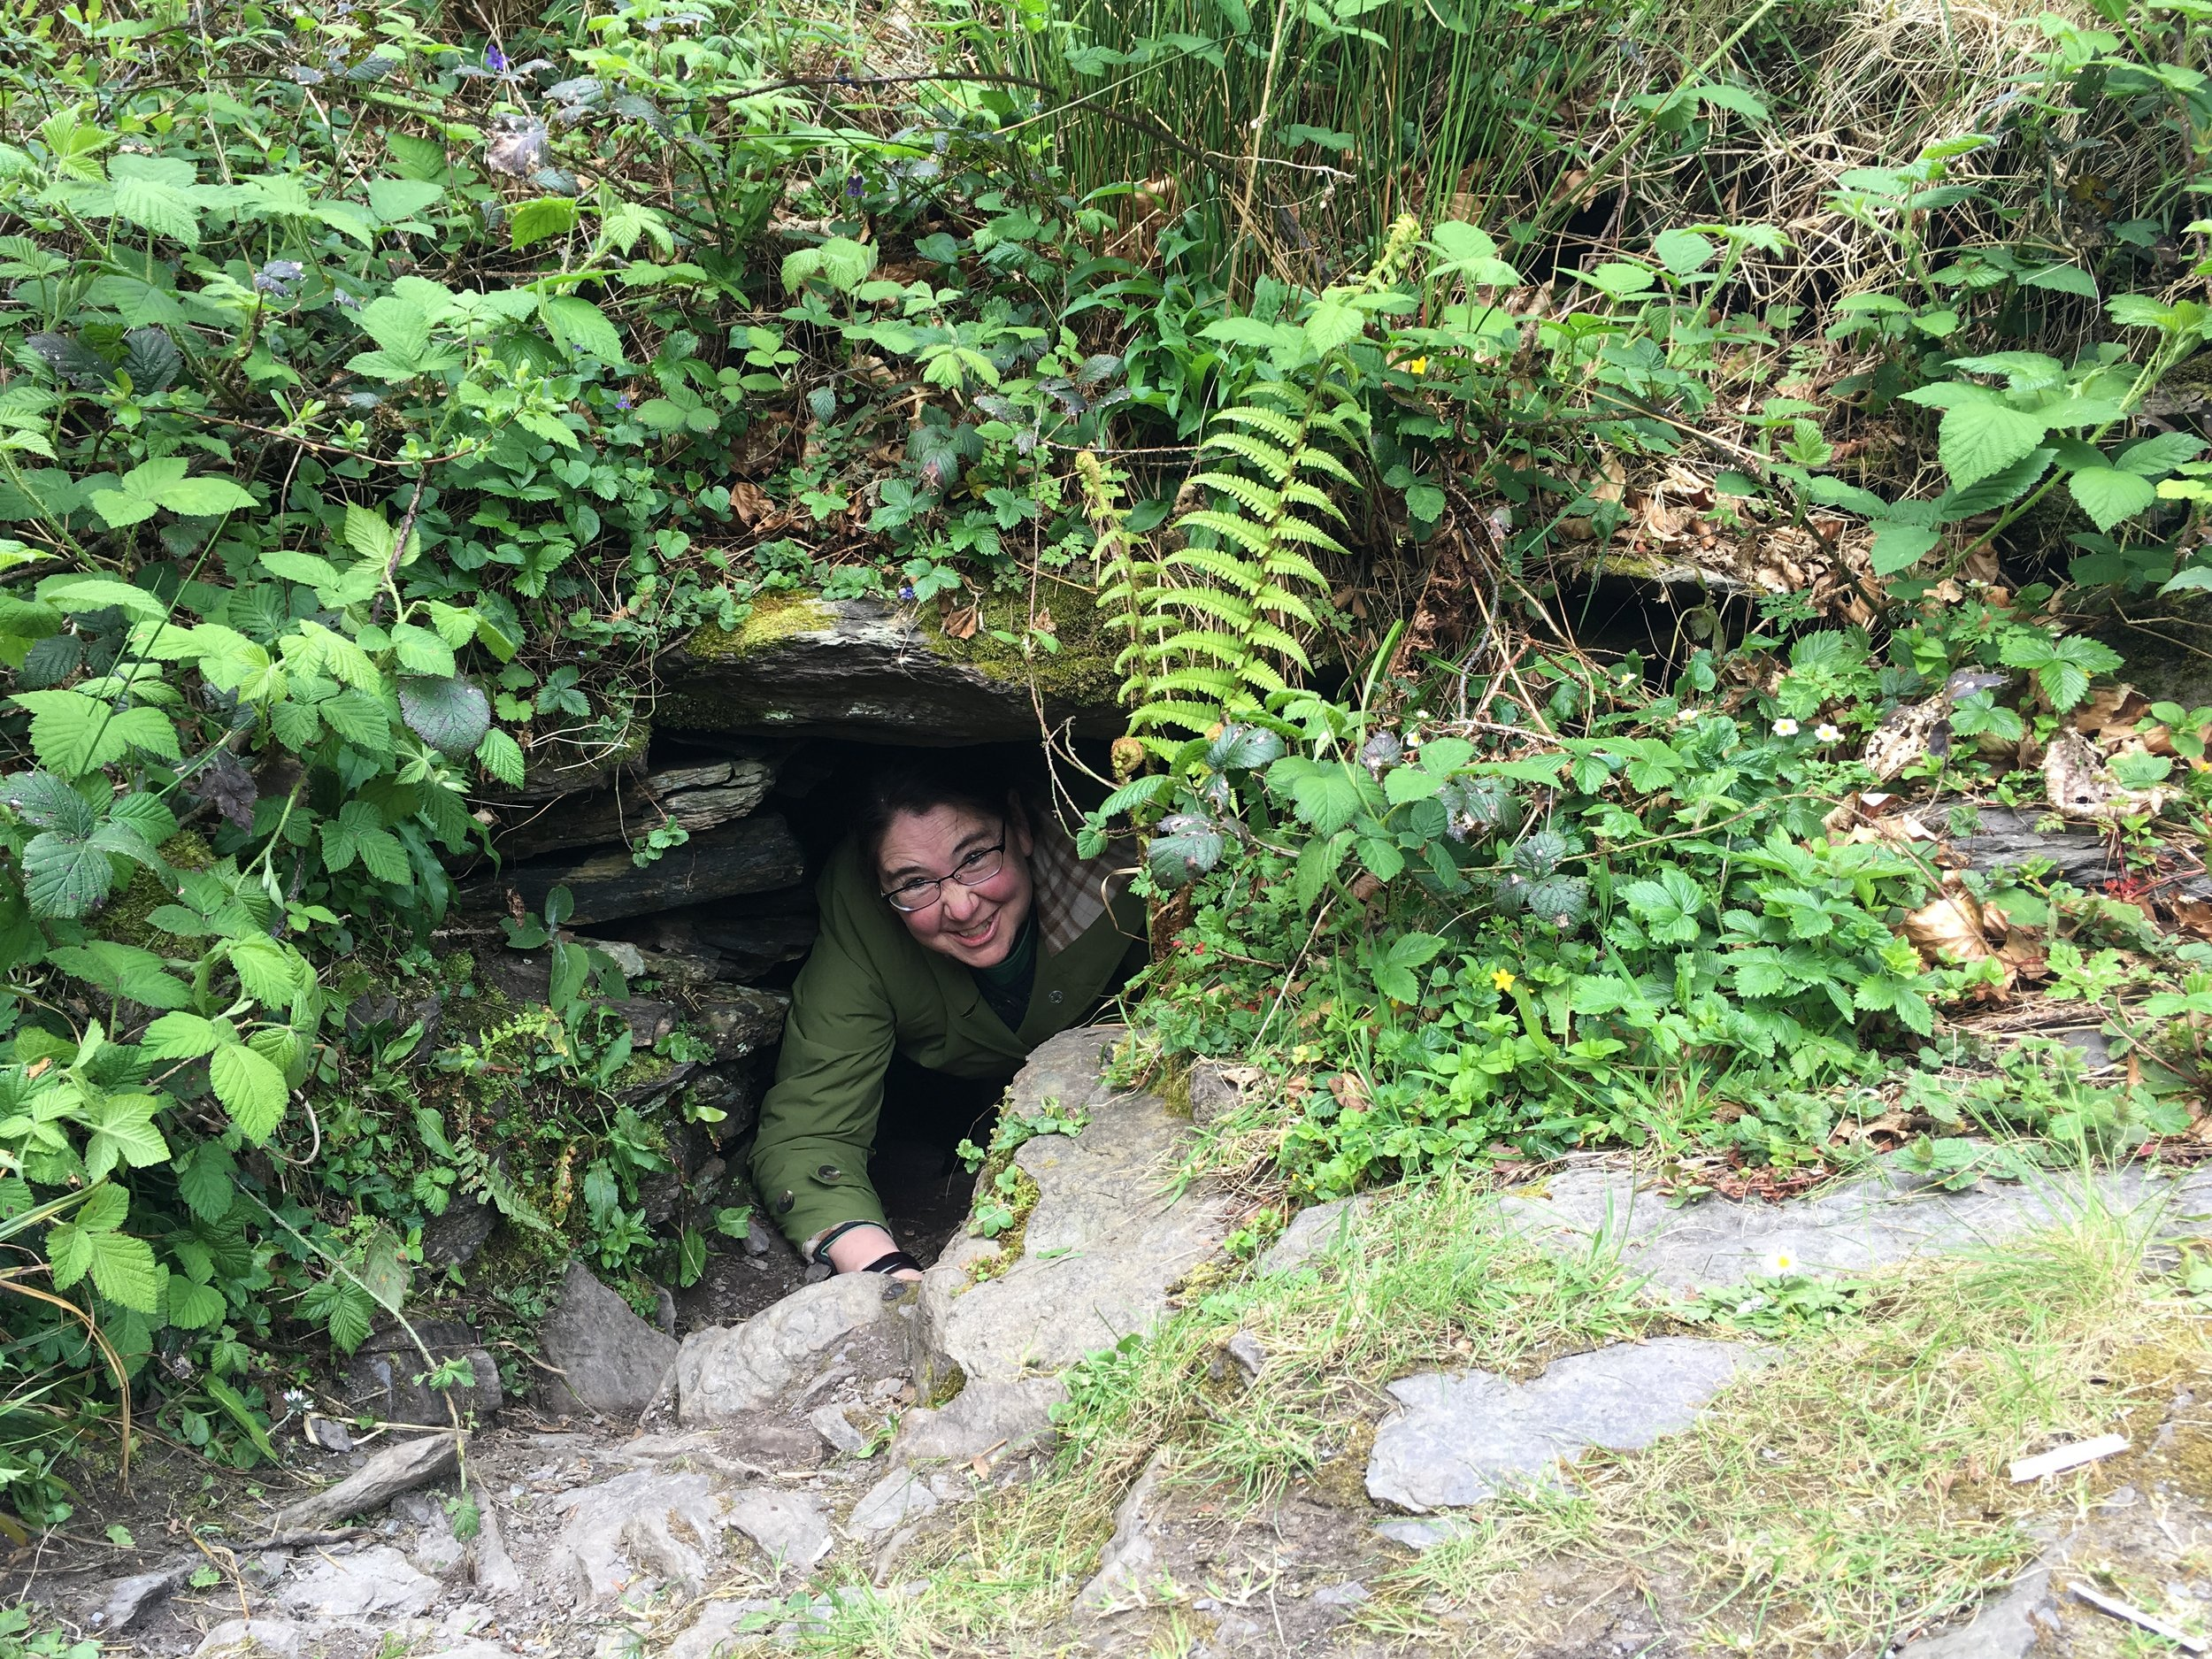 Susan climbs out of a souterrain.